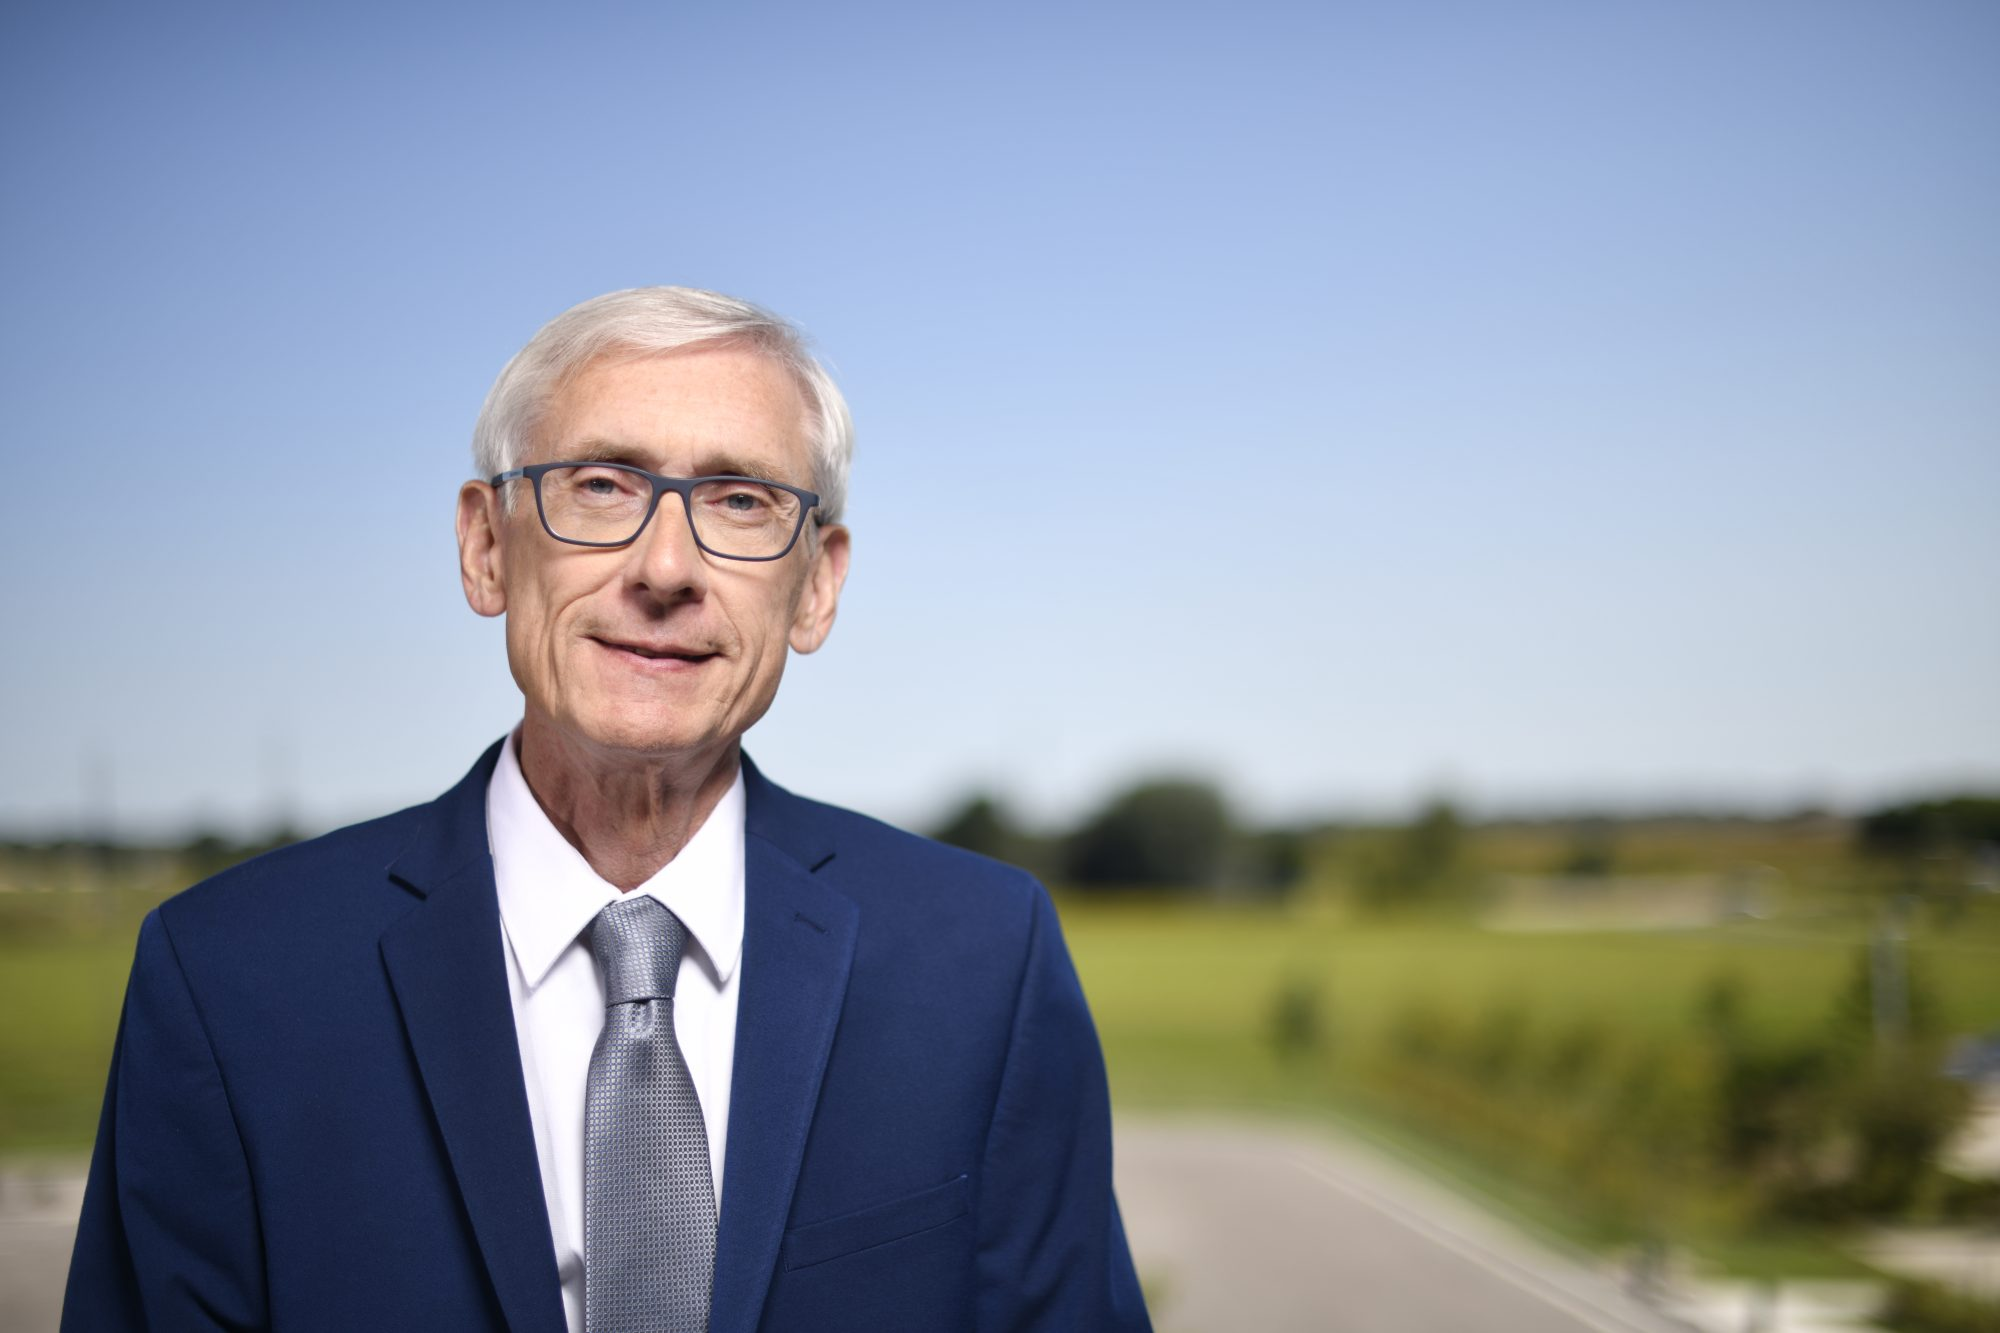 Gov. Evers Signs Bill Designating May 14 as Hmong-Lao Veterans Day, Orders Flags to Half-Staff